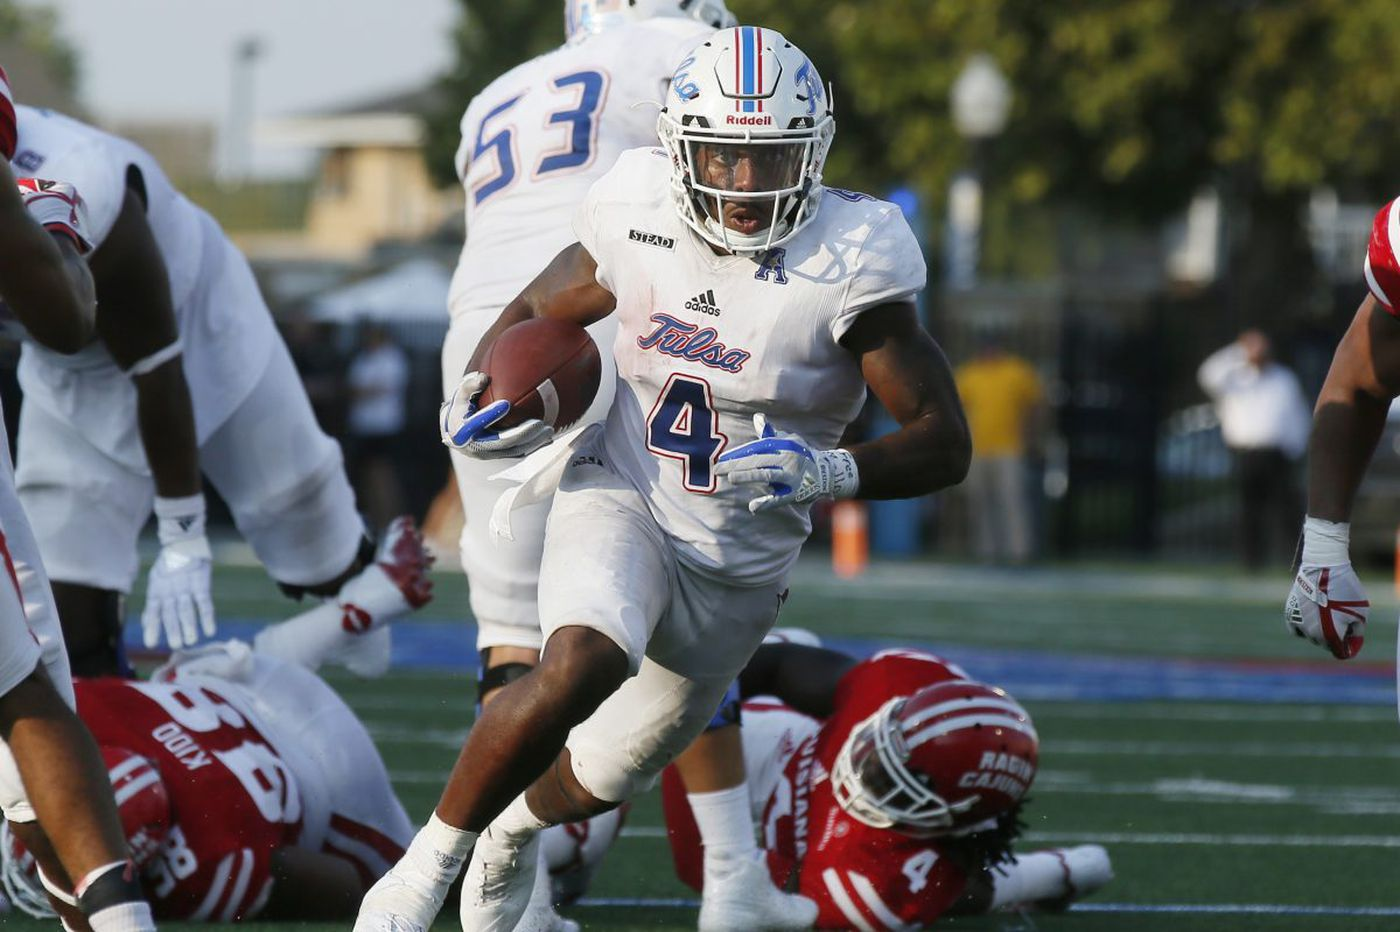 Stopping Tulsa running back D'Angelo Brewer will be a key for Temple